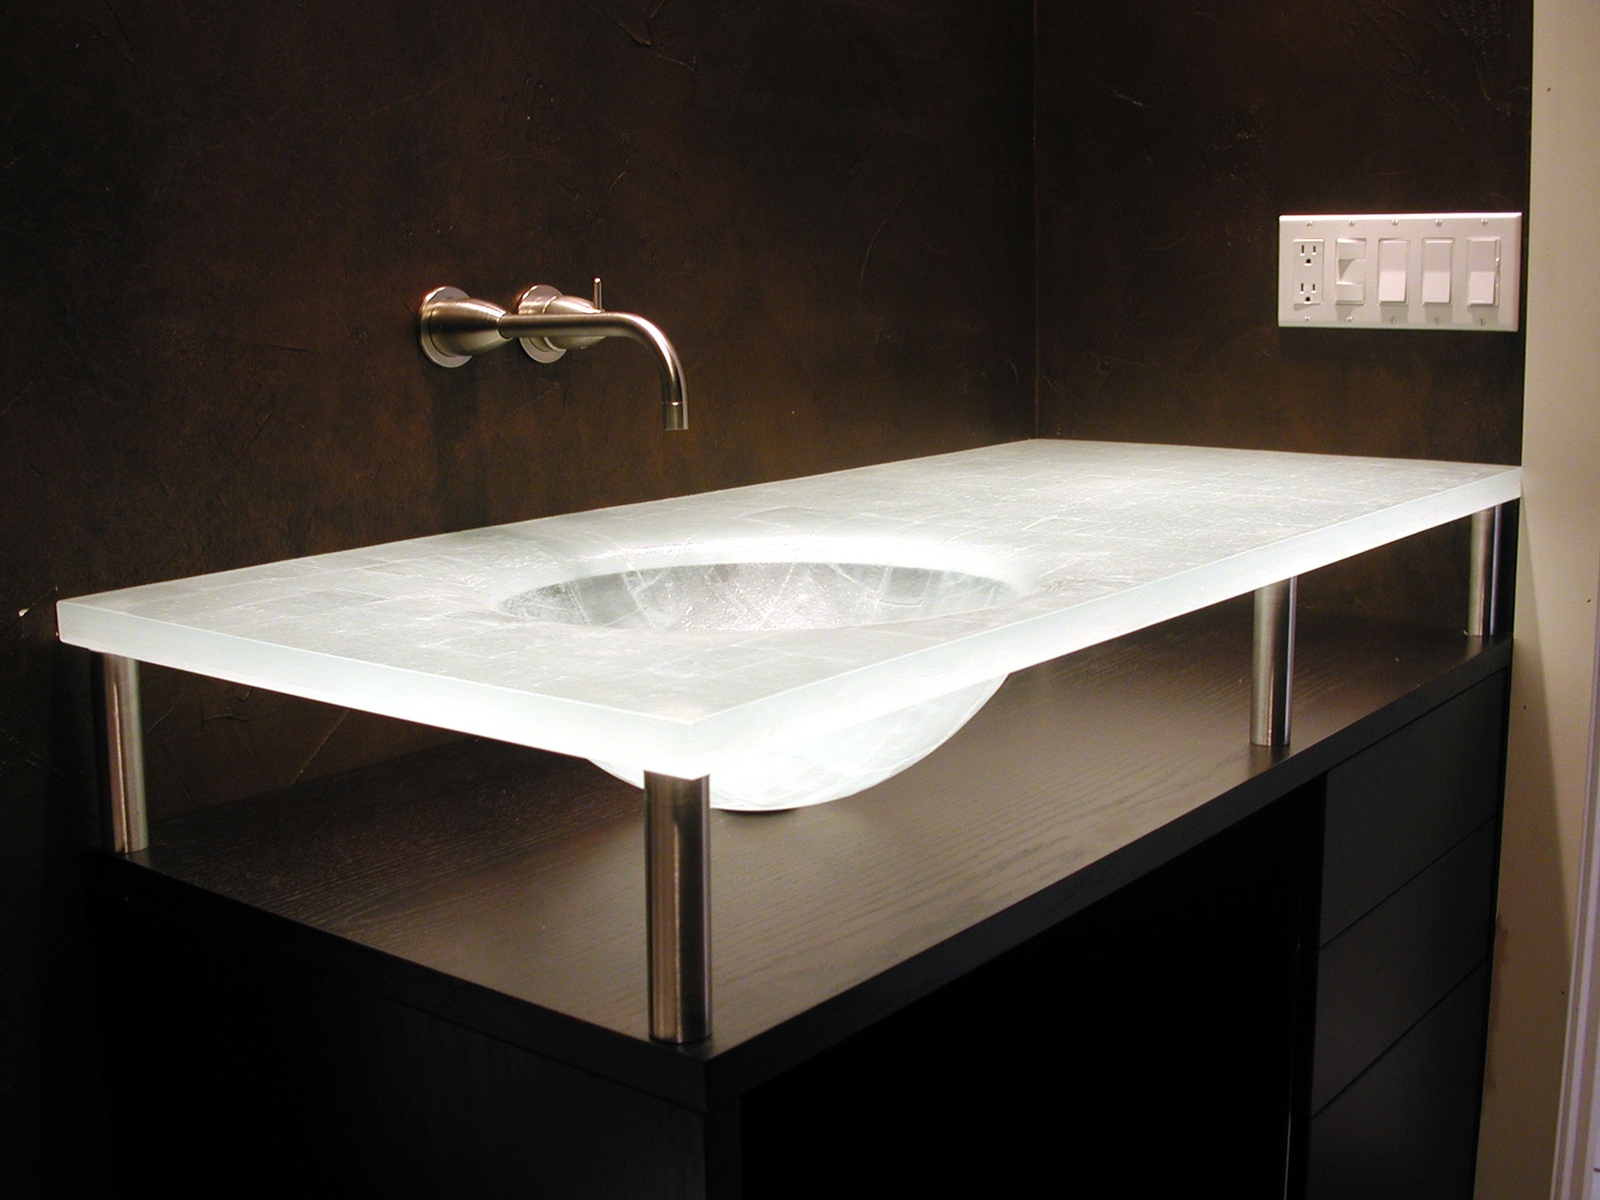 All In One Bathroom Sink And Countertop : Stainless steel posts support a hand-cut glass countertop and sink ...